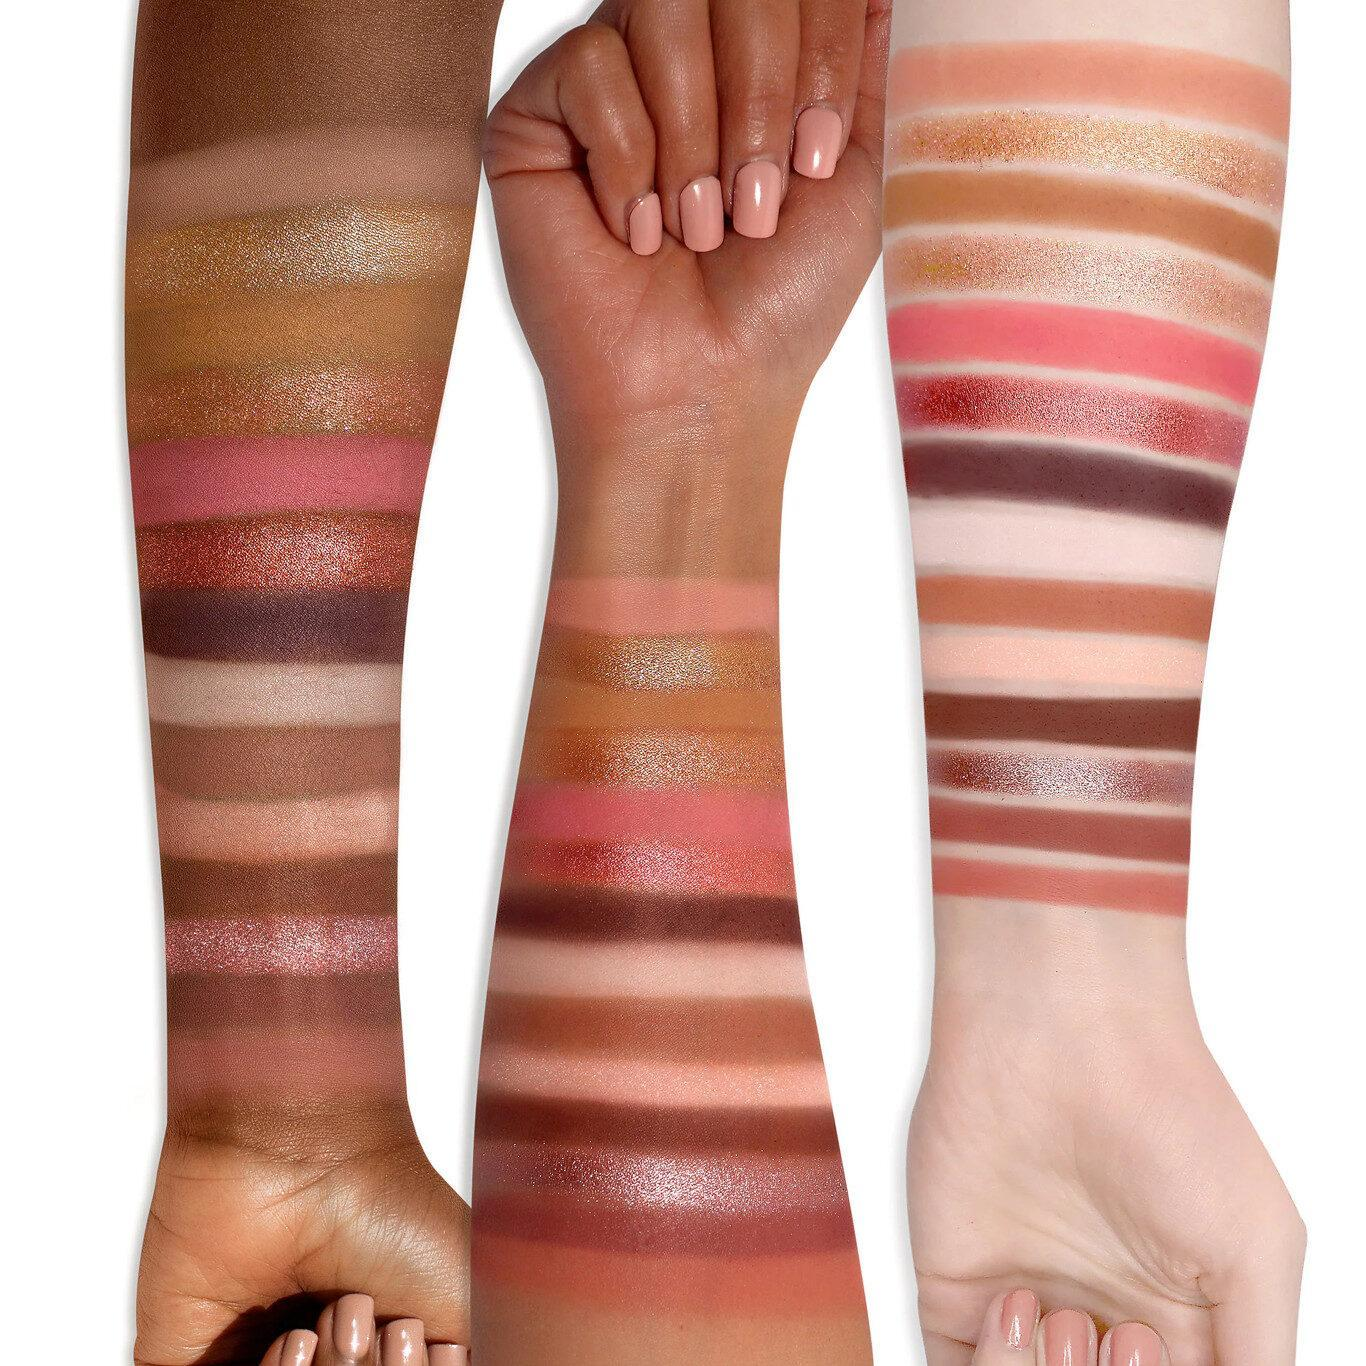 Too Faced Teddy Bare Collection Teddy Bare It All Eye Shadow Palette Arm Swatches